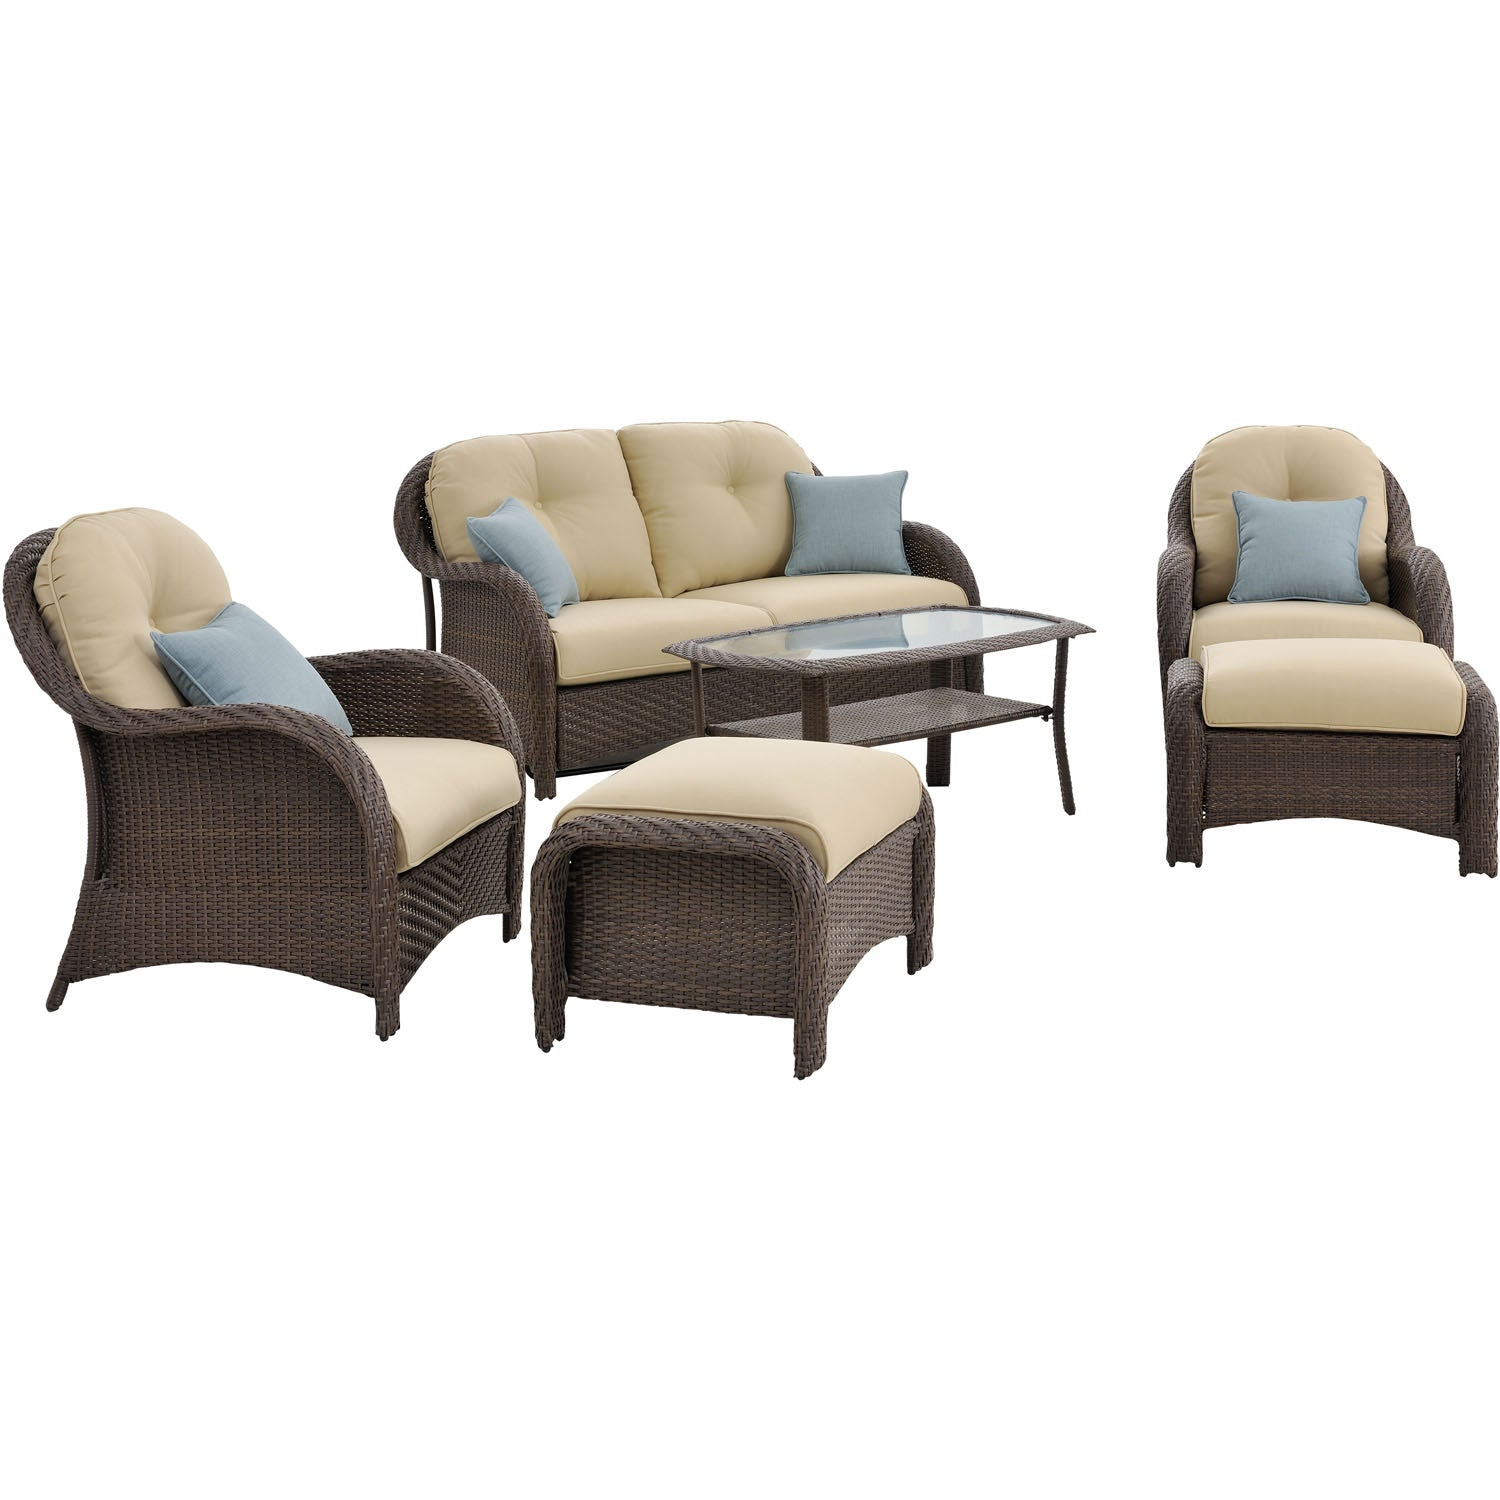 6pc woven deep seating set: loveseat, 2 chairs, 2 ottomans, 1